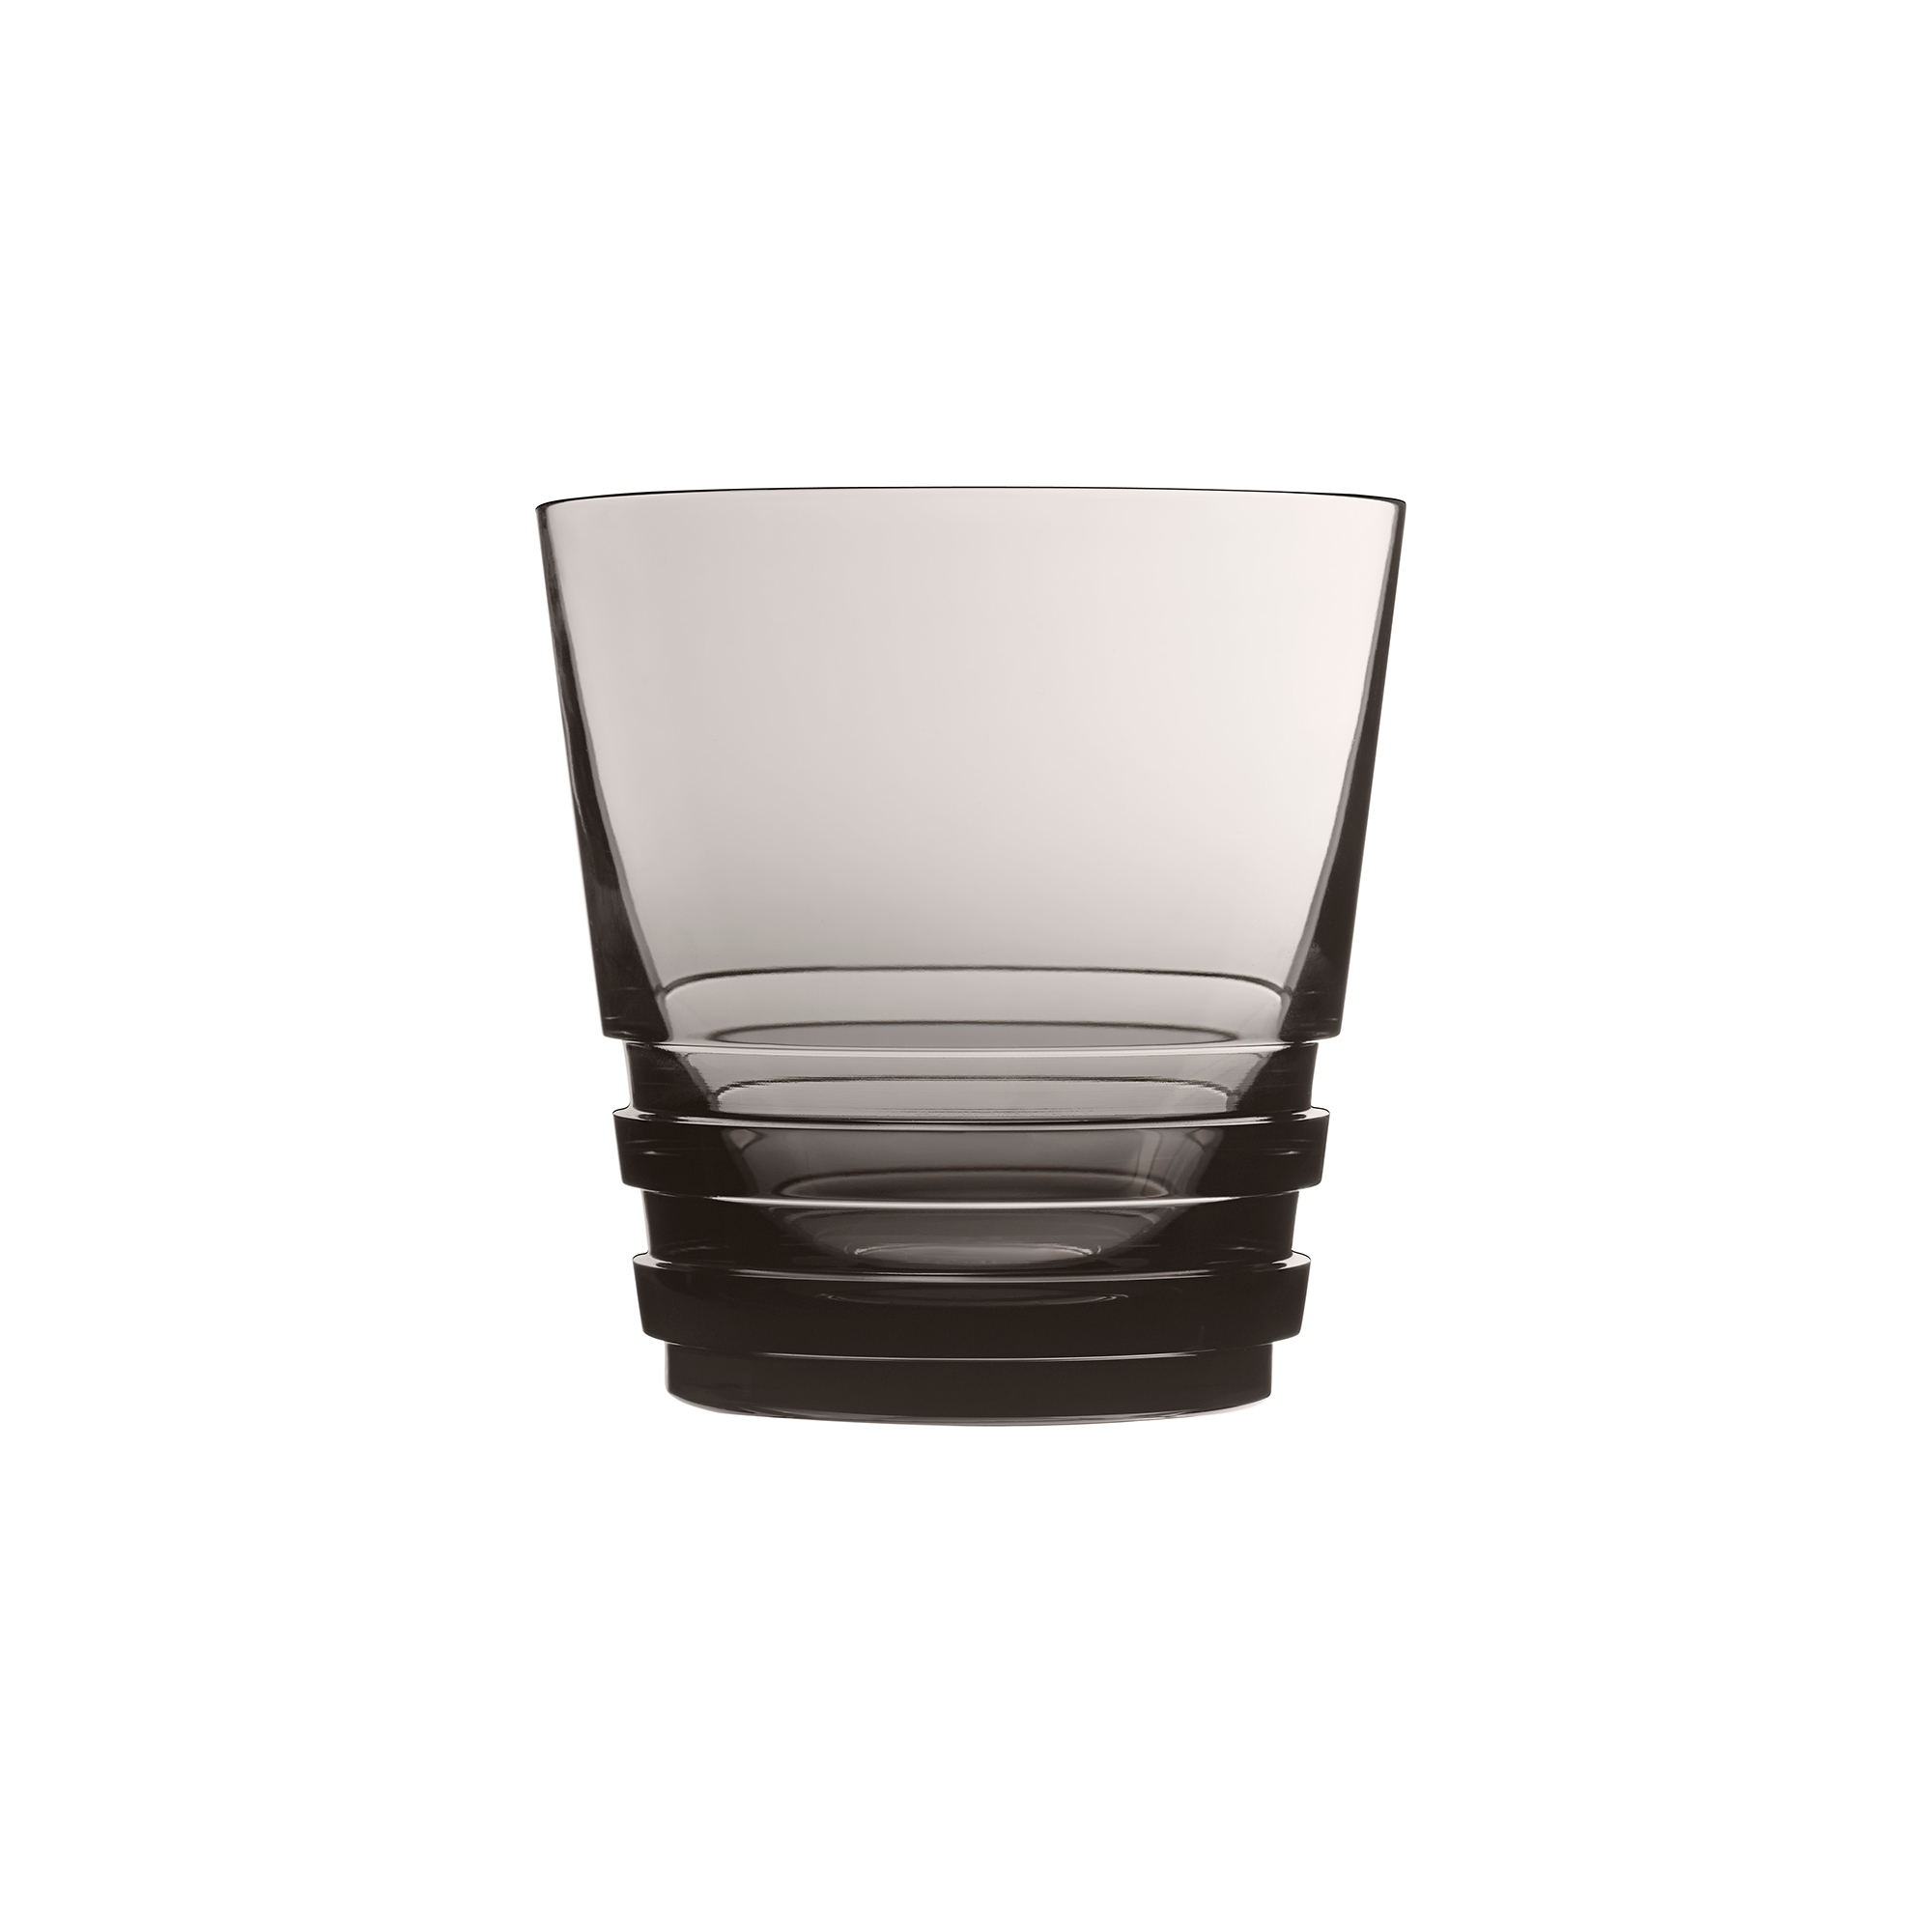 Saint-Louis Oxymore Old-Fashioned Glass, Flannel Gray